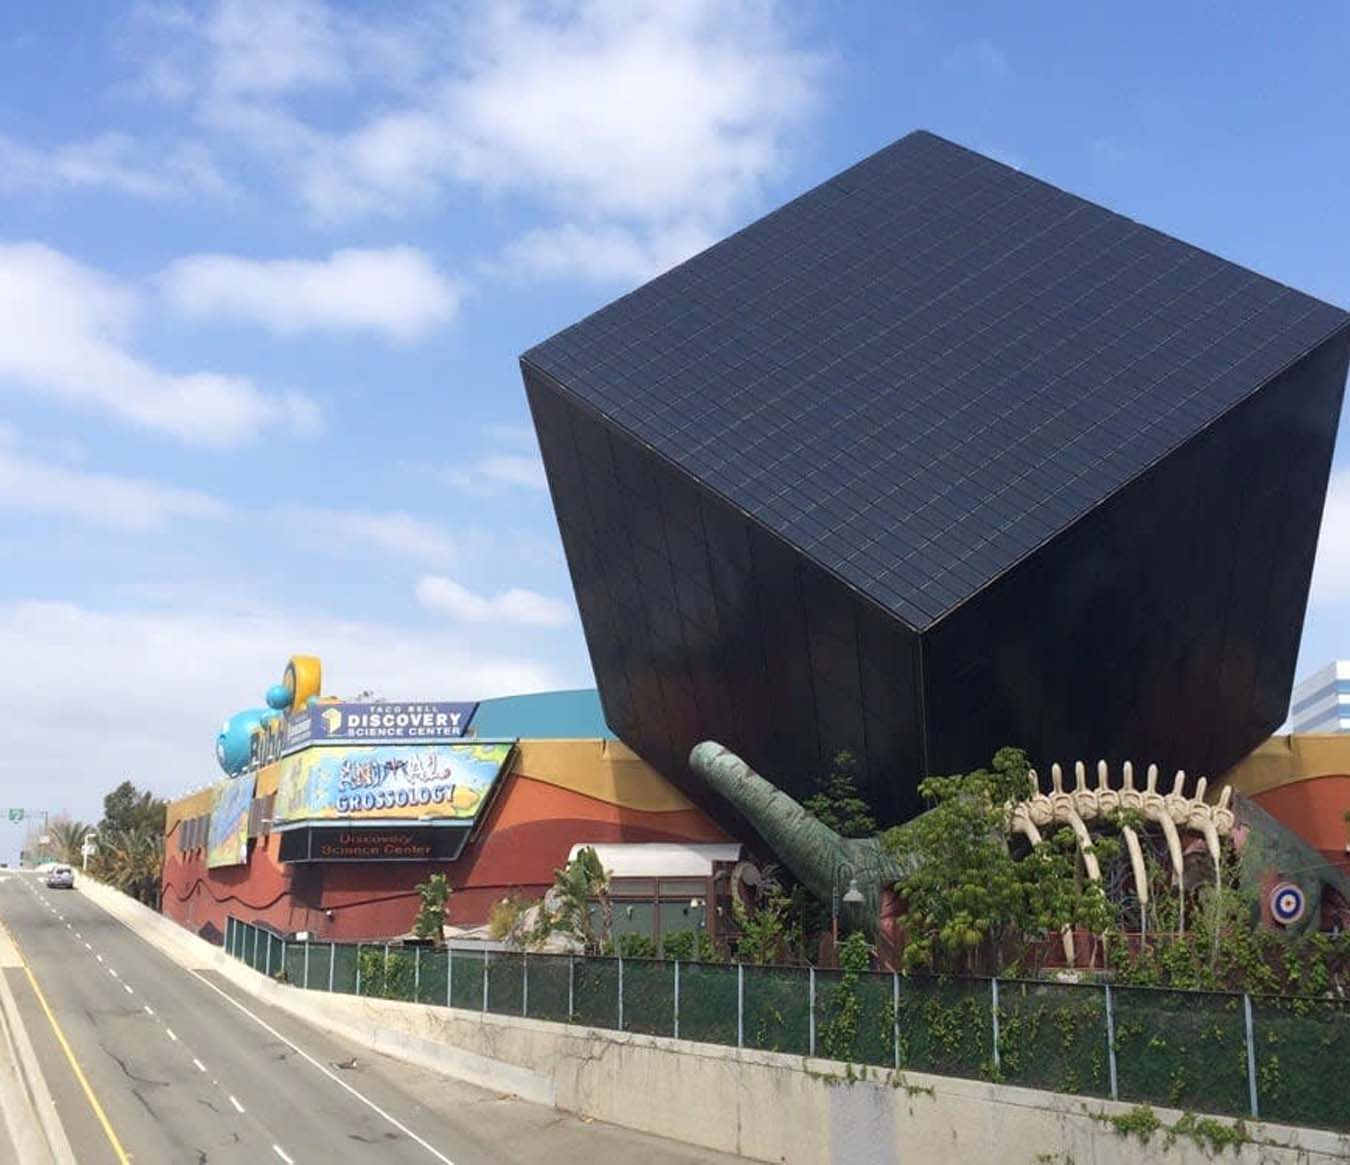 Things to Do in Anaheim - Discovery Cube Orange County